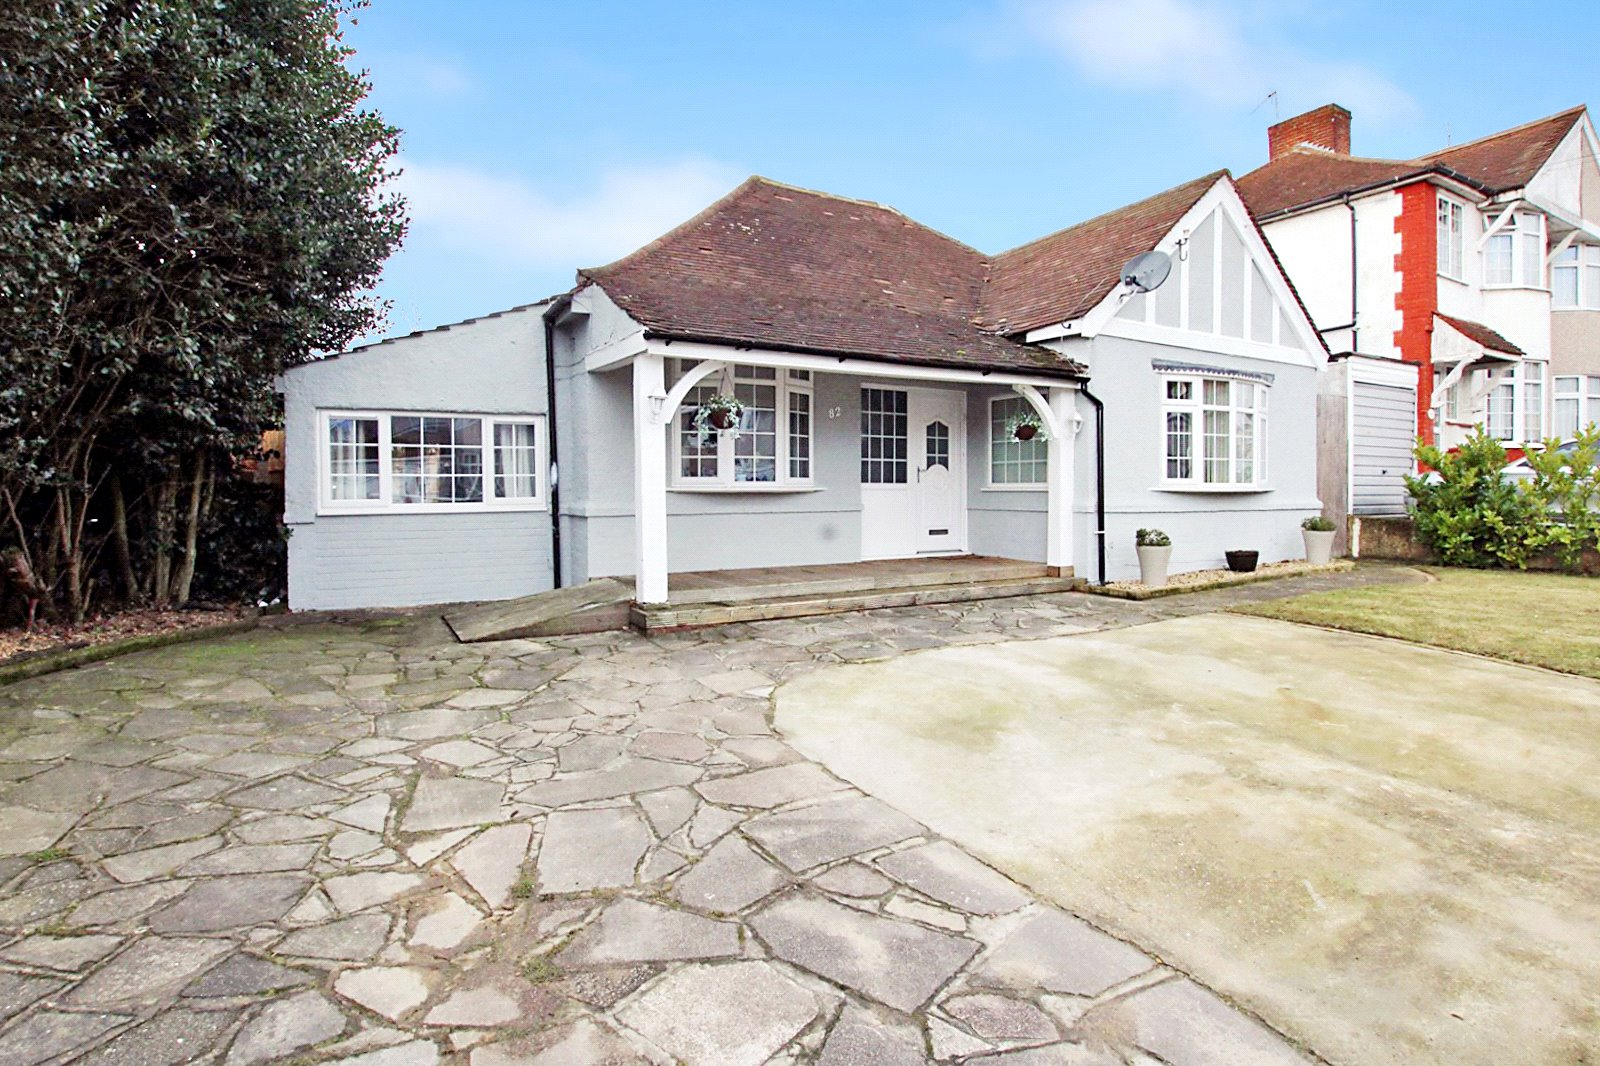 Westmoreland Avenue, South Welling, Kent, DA16